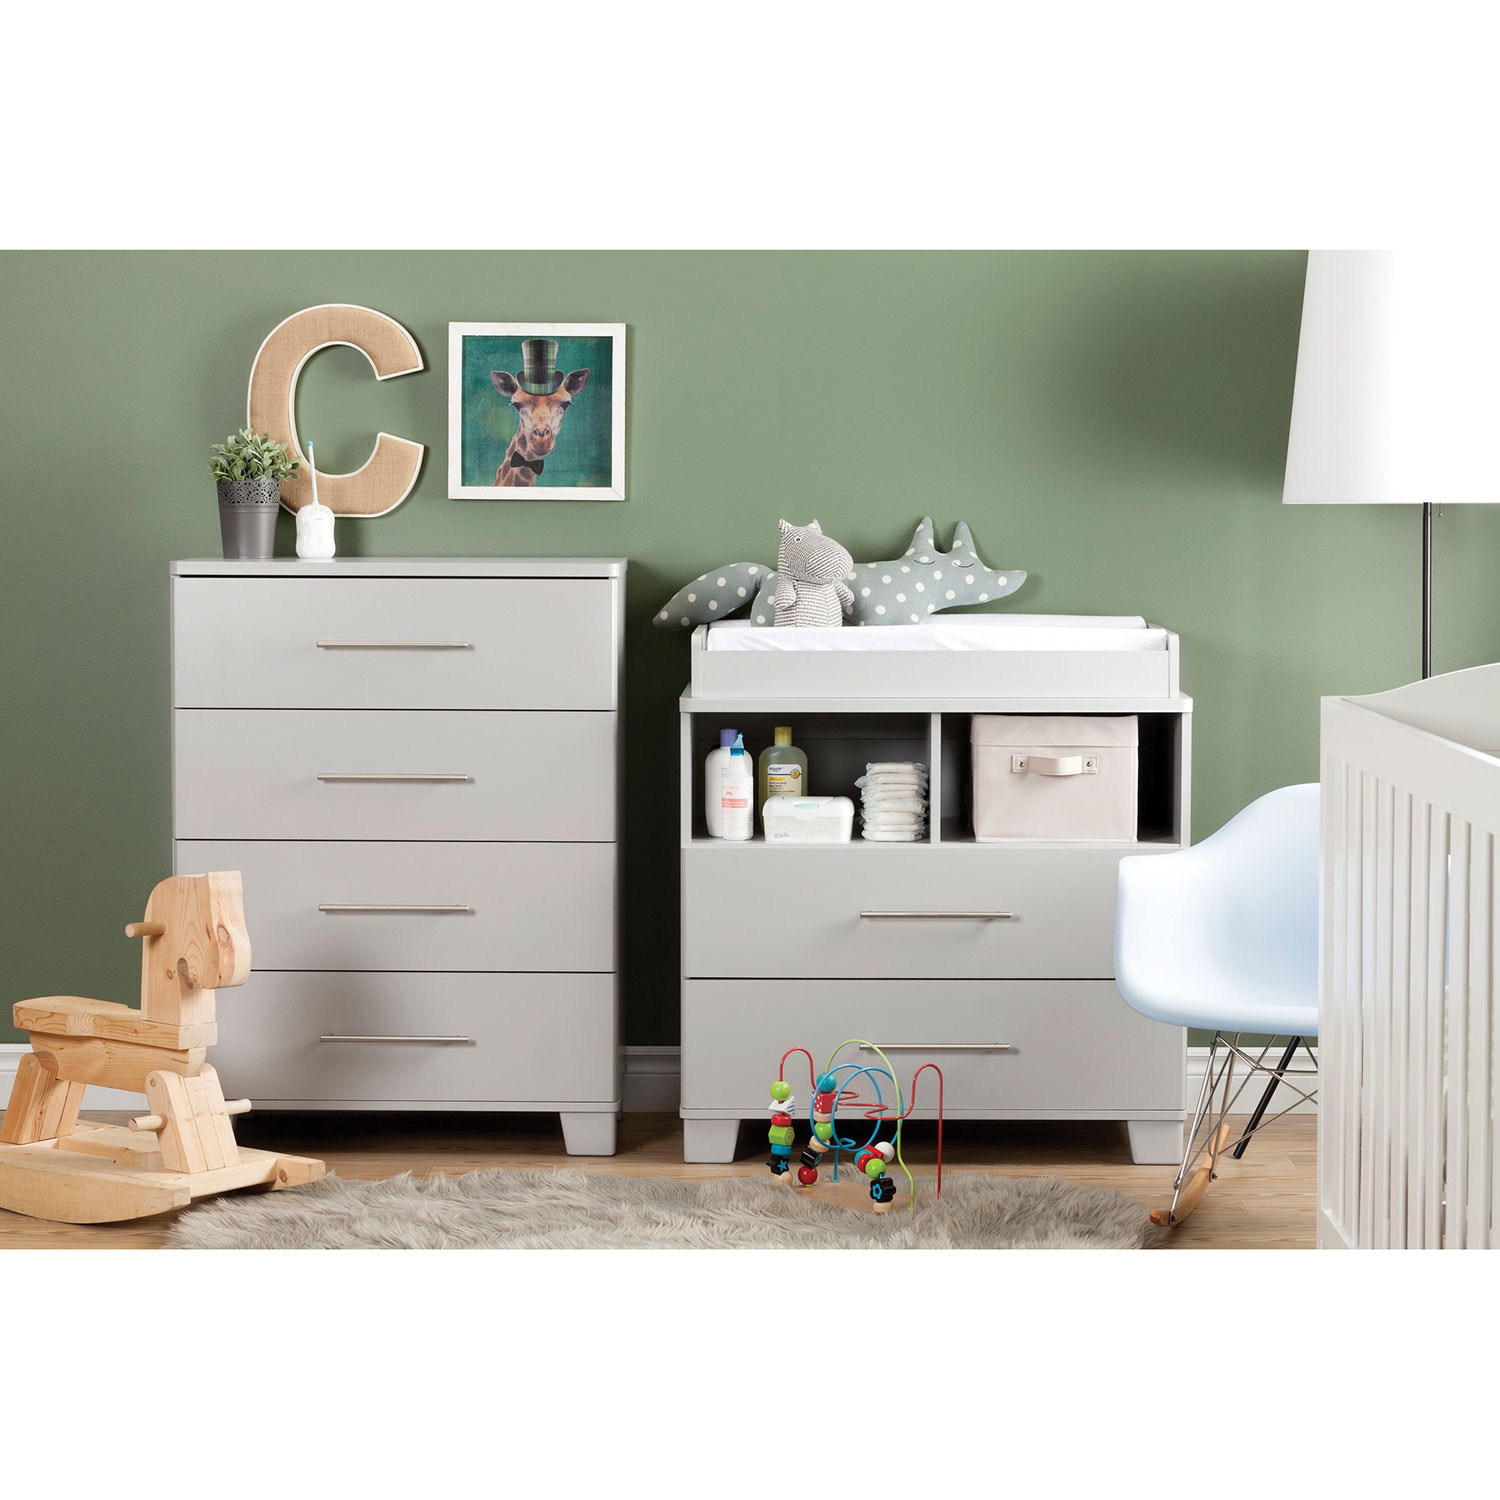 south shore cuddly changing tabledresser  soft gray  change  - south shore cuddly changing tabledresser  soft gray  change tables best buy canada